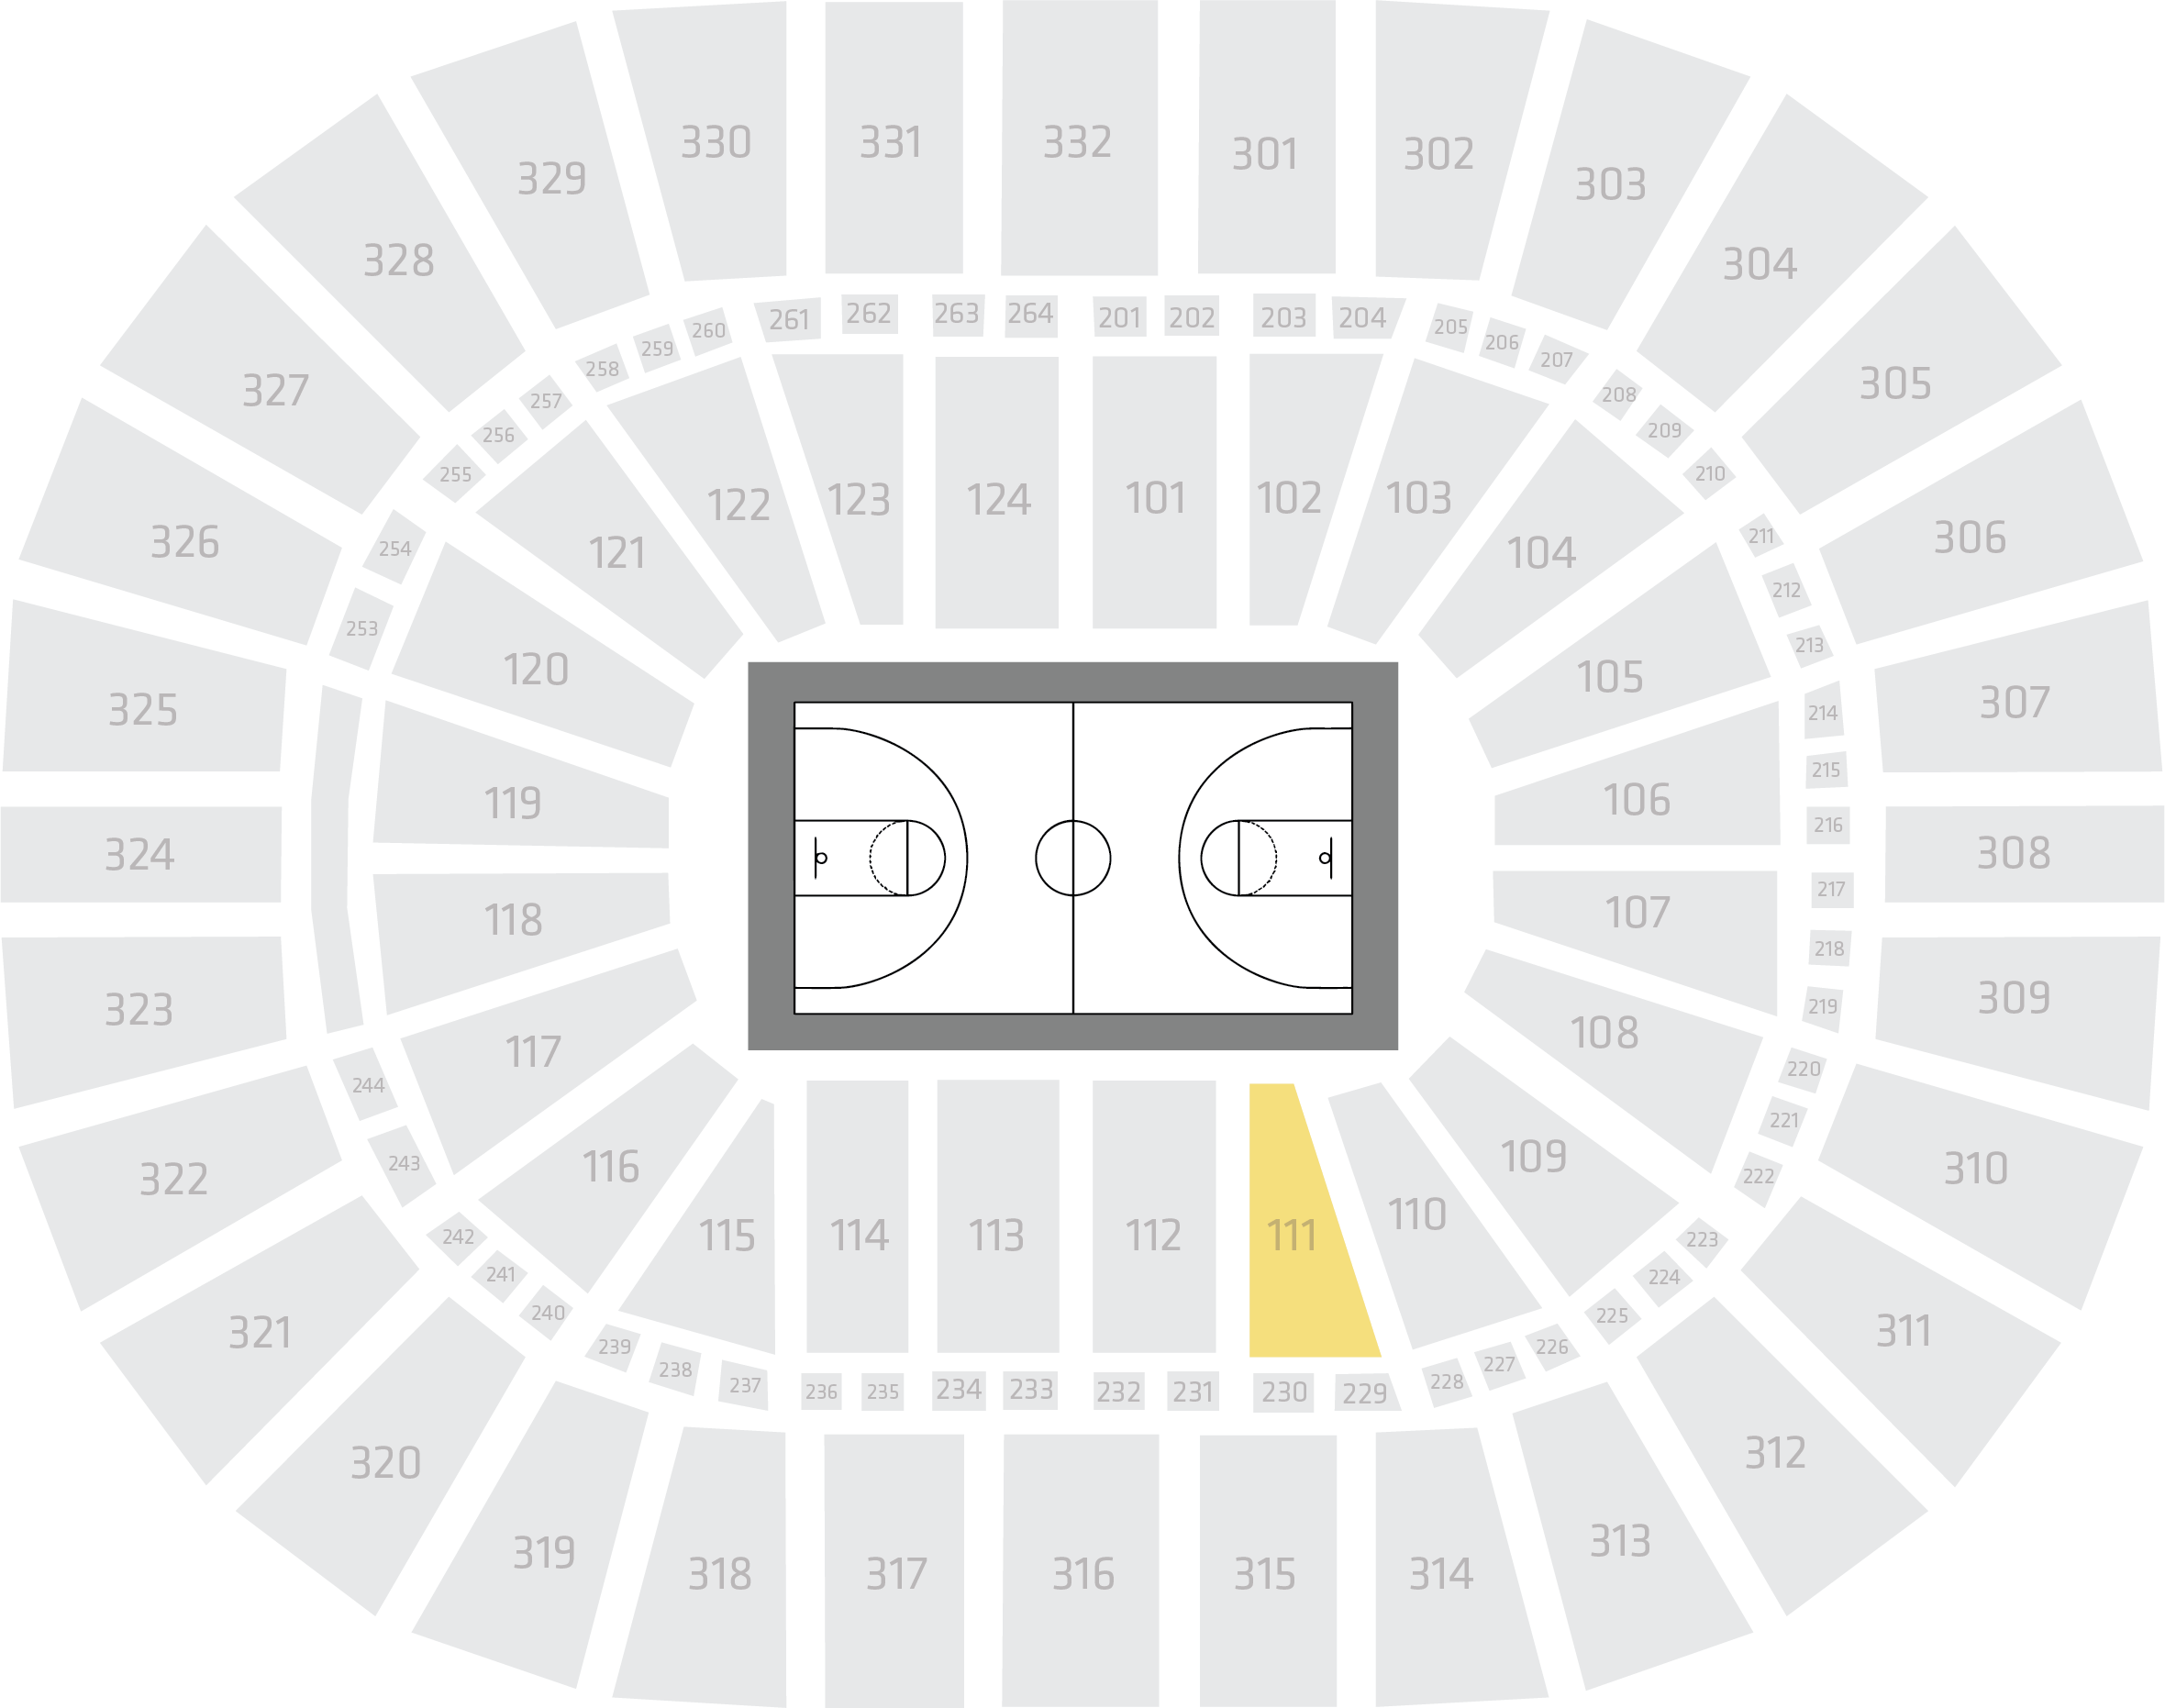 Smoothie-King-Center-Seating-Chart-GOLD-C.png